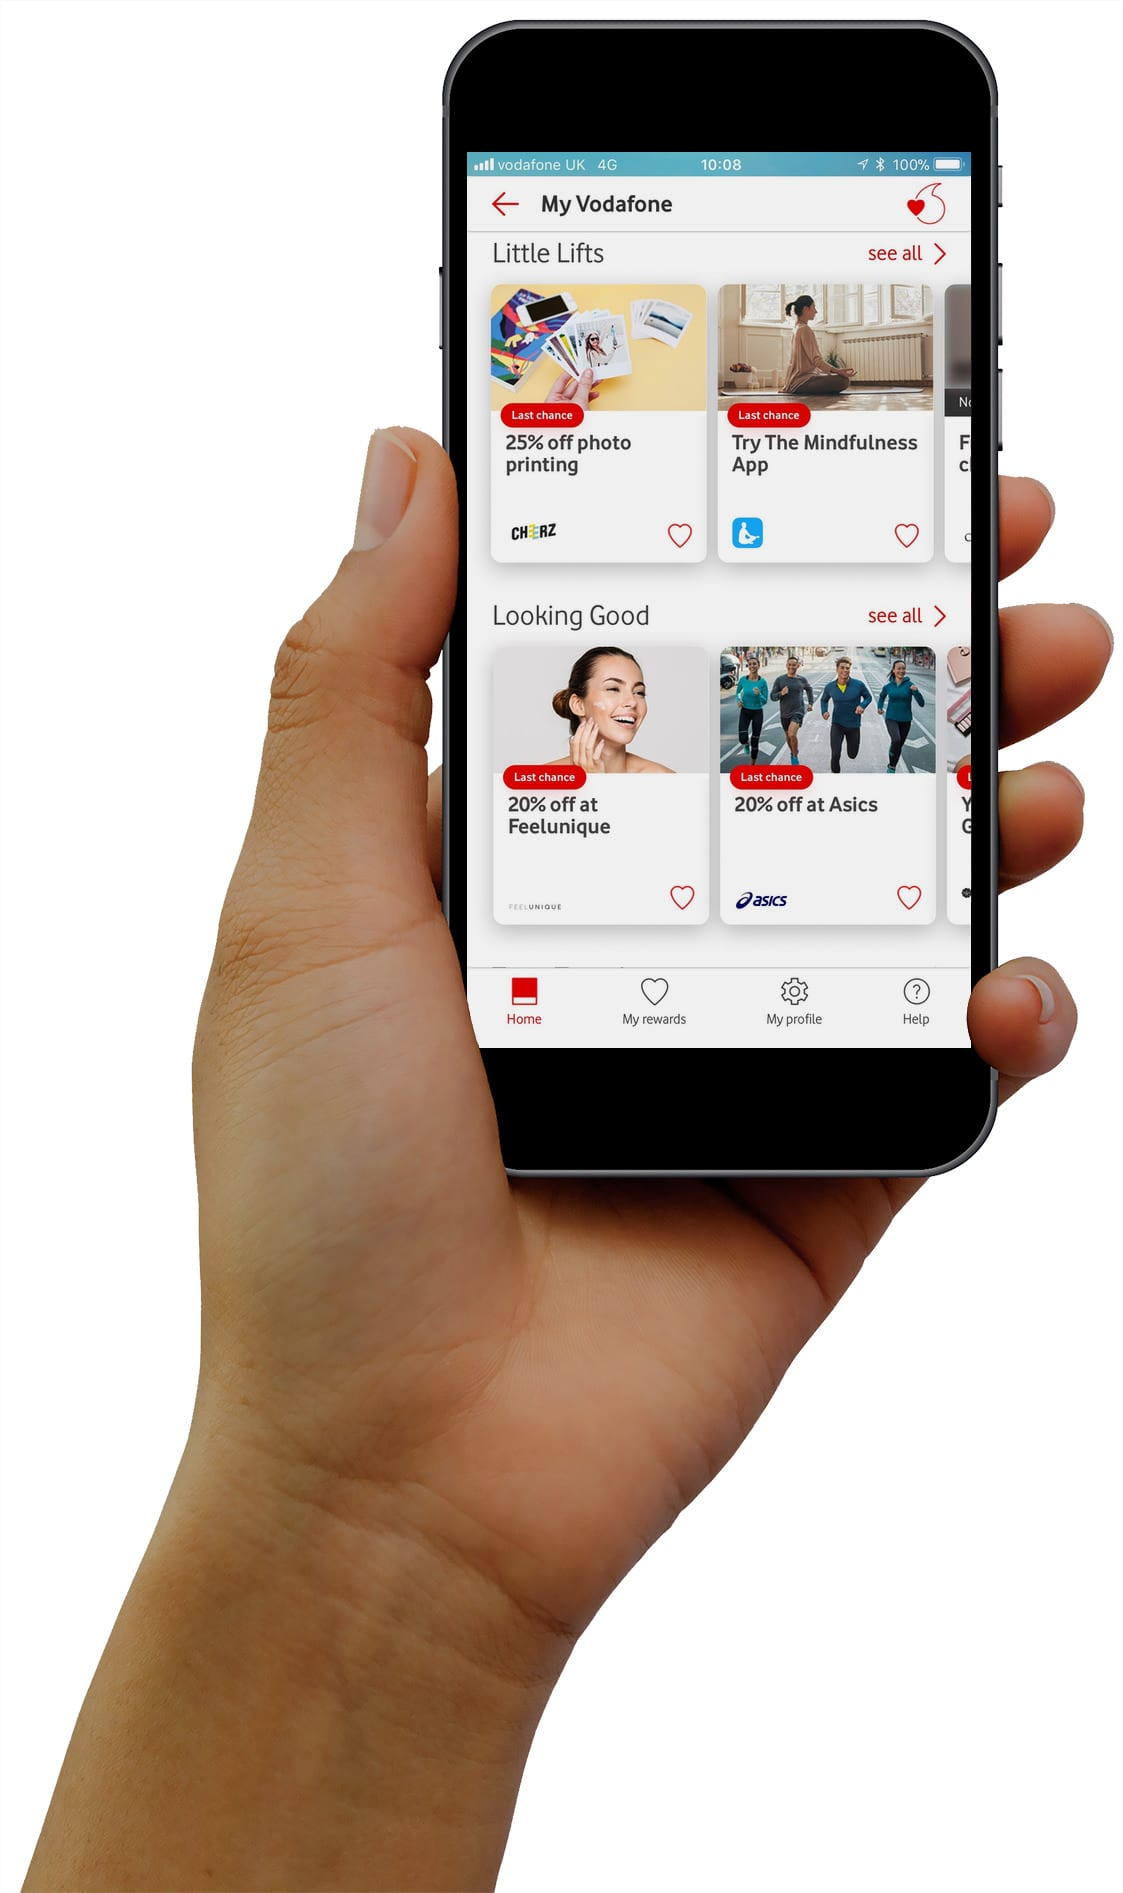 Vodafone VeryMe Rewards